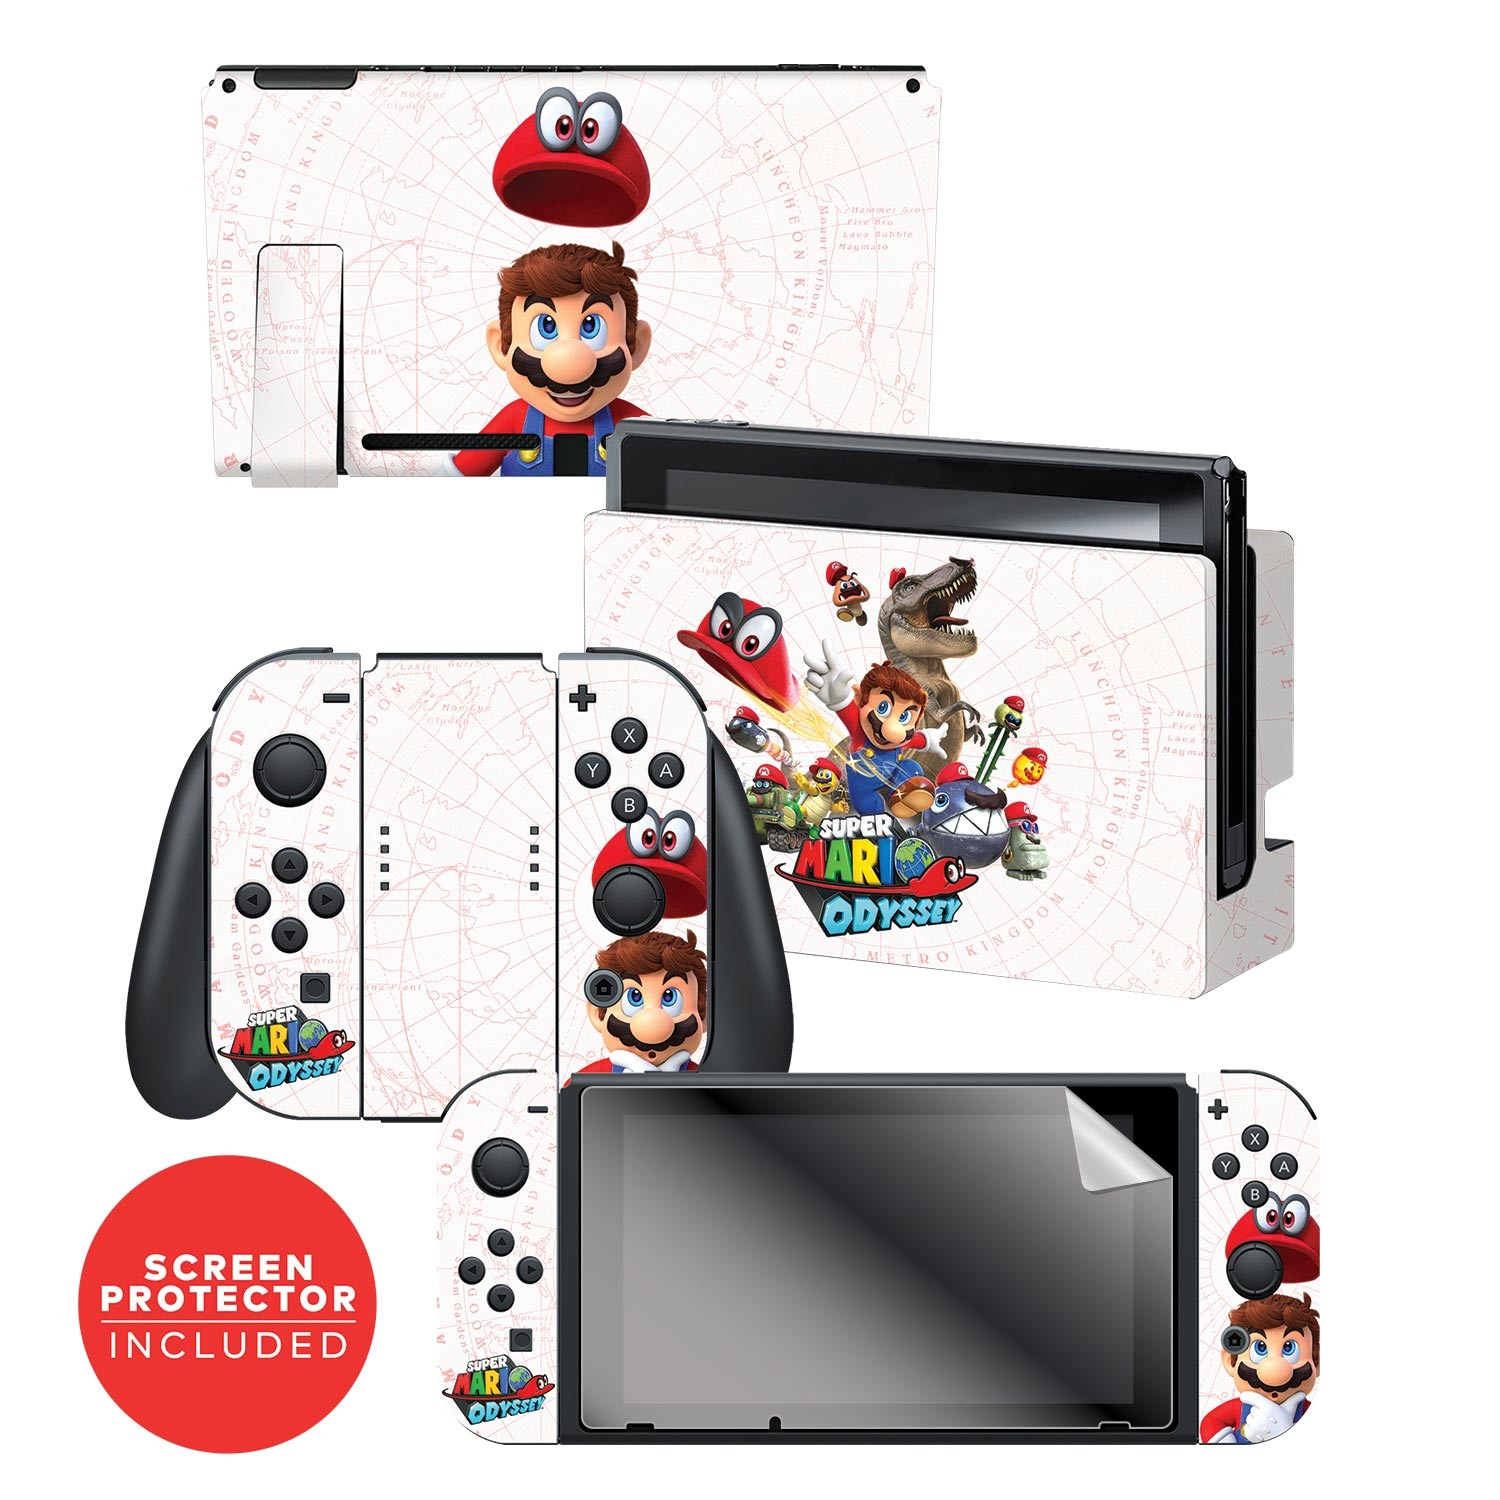 "Super Mario Odyssey™ ""Capture Map"" Nintendo Switch™ Console skin + Dock Skin + Joy-Con™ skin +  Joy-Con™ Grip Skin + Screen Protector Bundle Assortment, Officially Licensed by Nintendo"